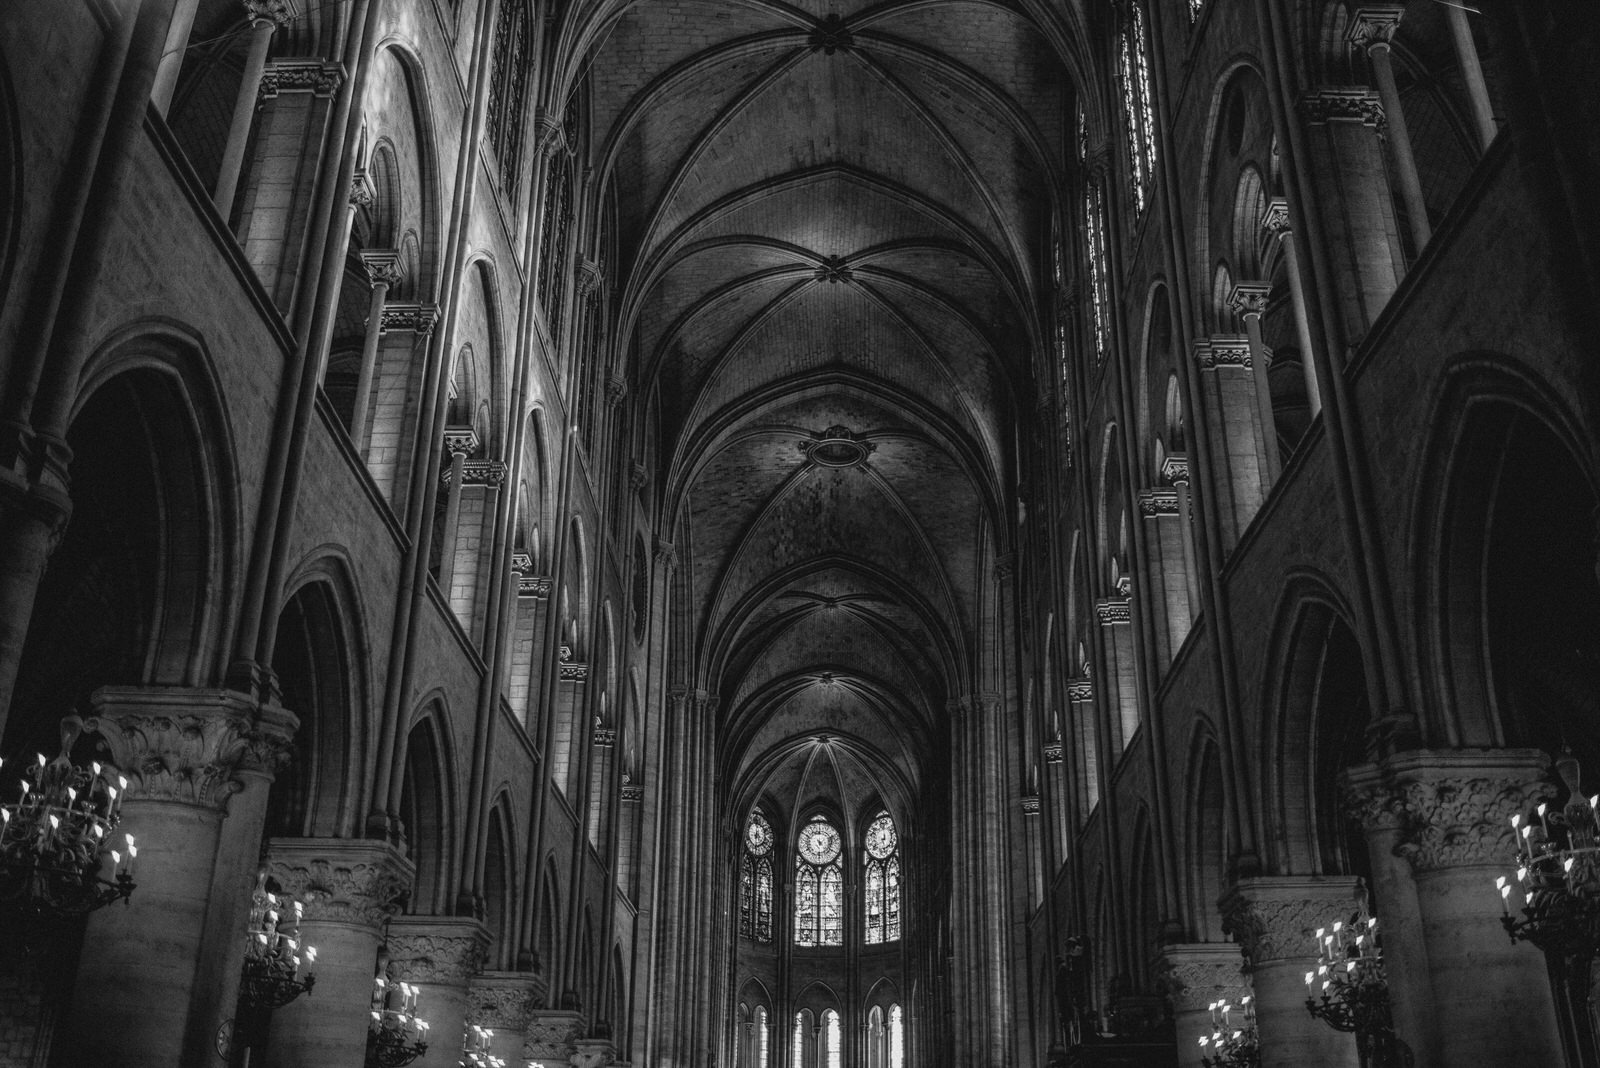 paris-church-ameirfikri-travel-image